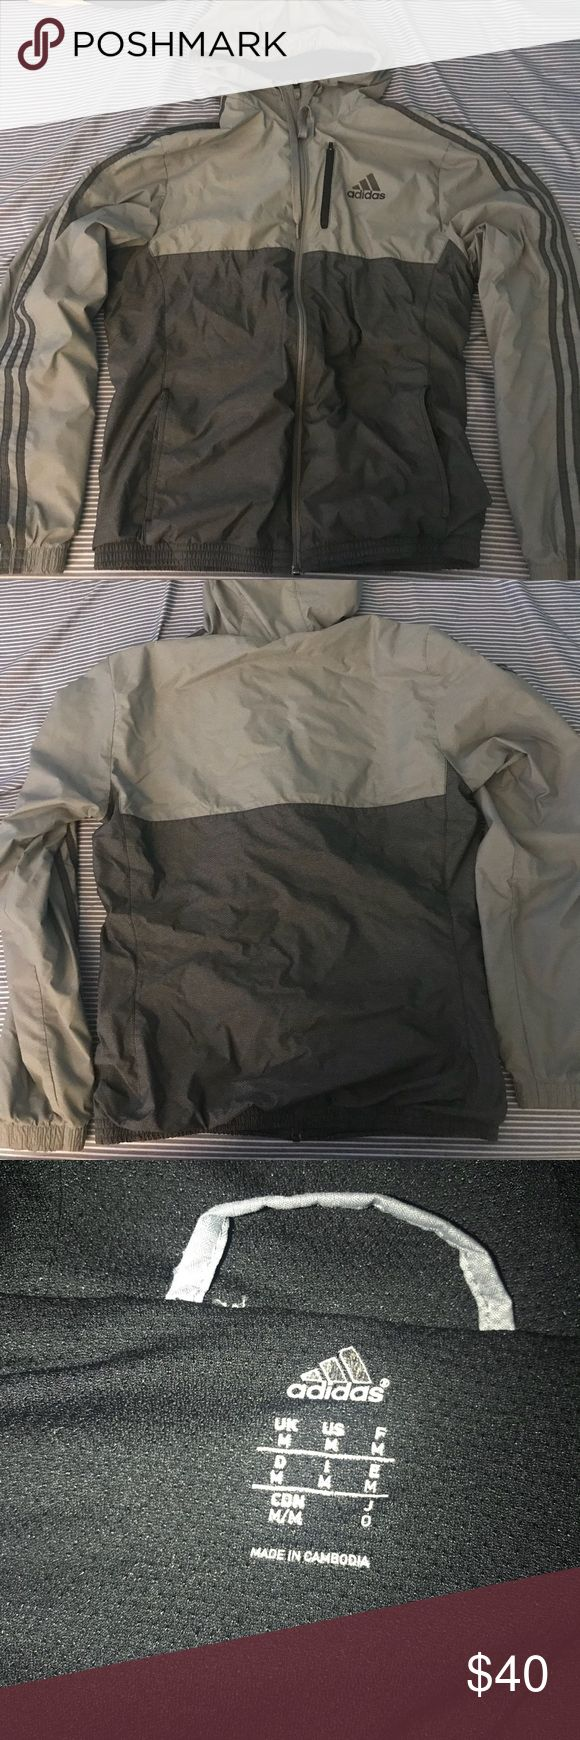 Adidas jacket Gray and dark gray design for rain and wind. In good condition close to new condition. adidas Jackets & Coats Raincoats